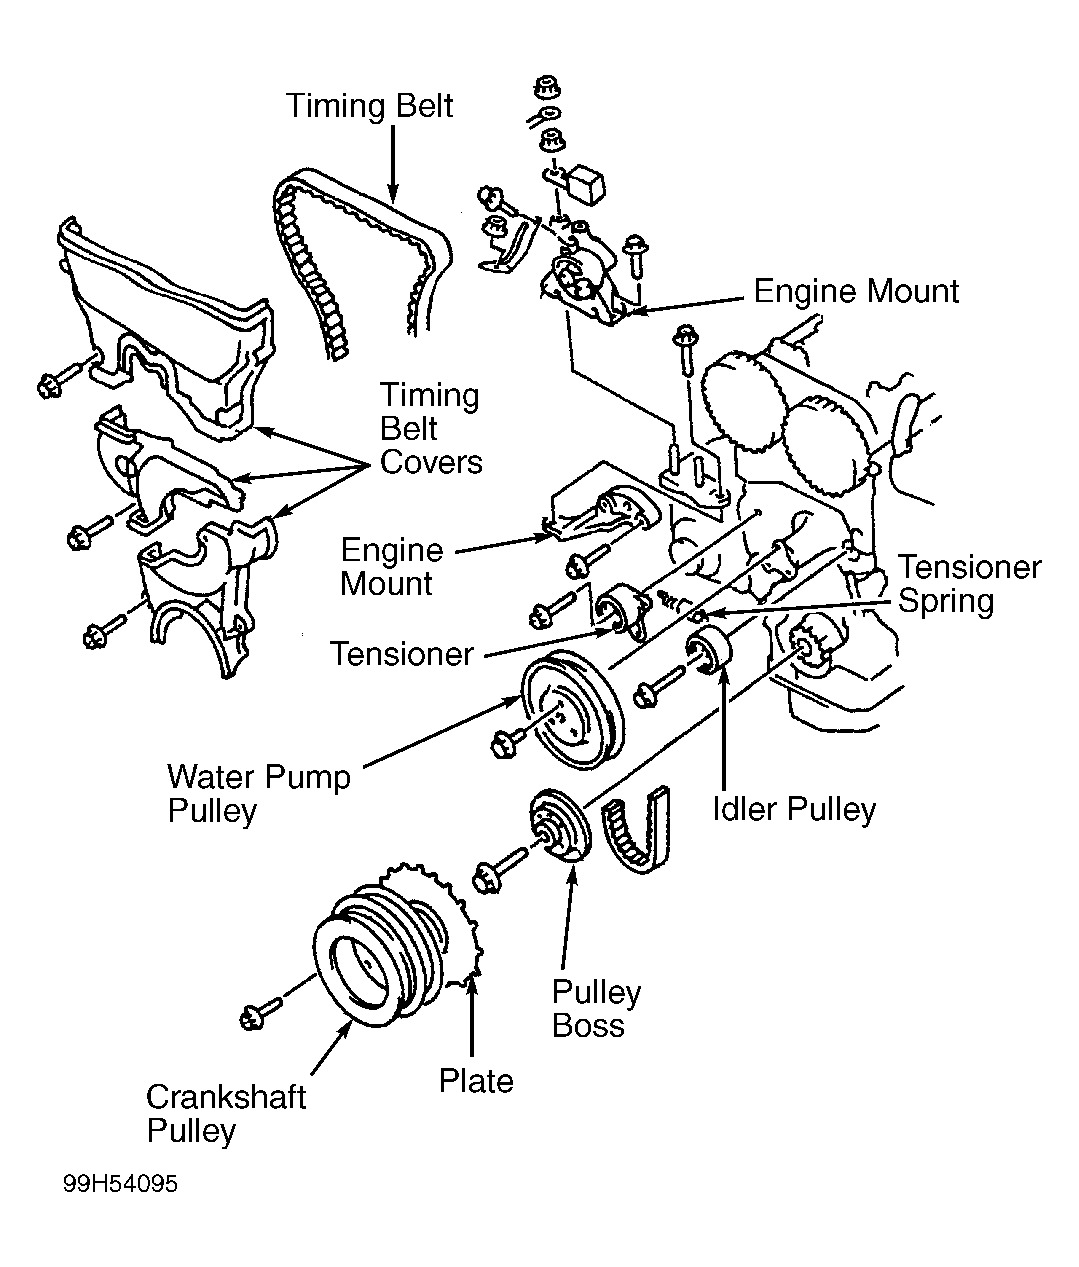 [WRG-5771] 2001 Mazda 626 Engine Diagram